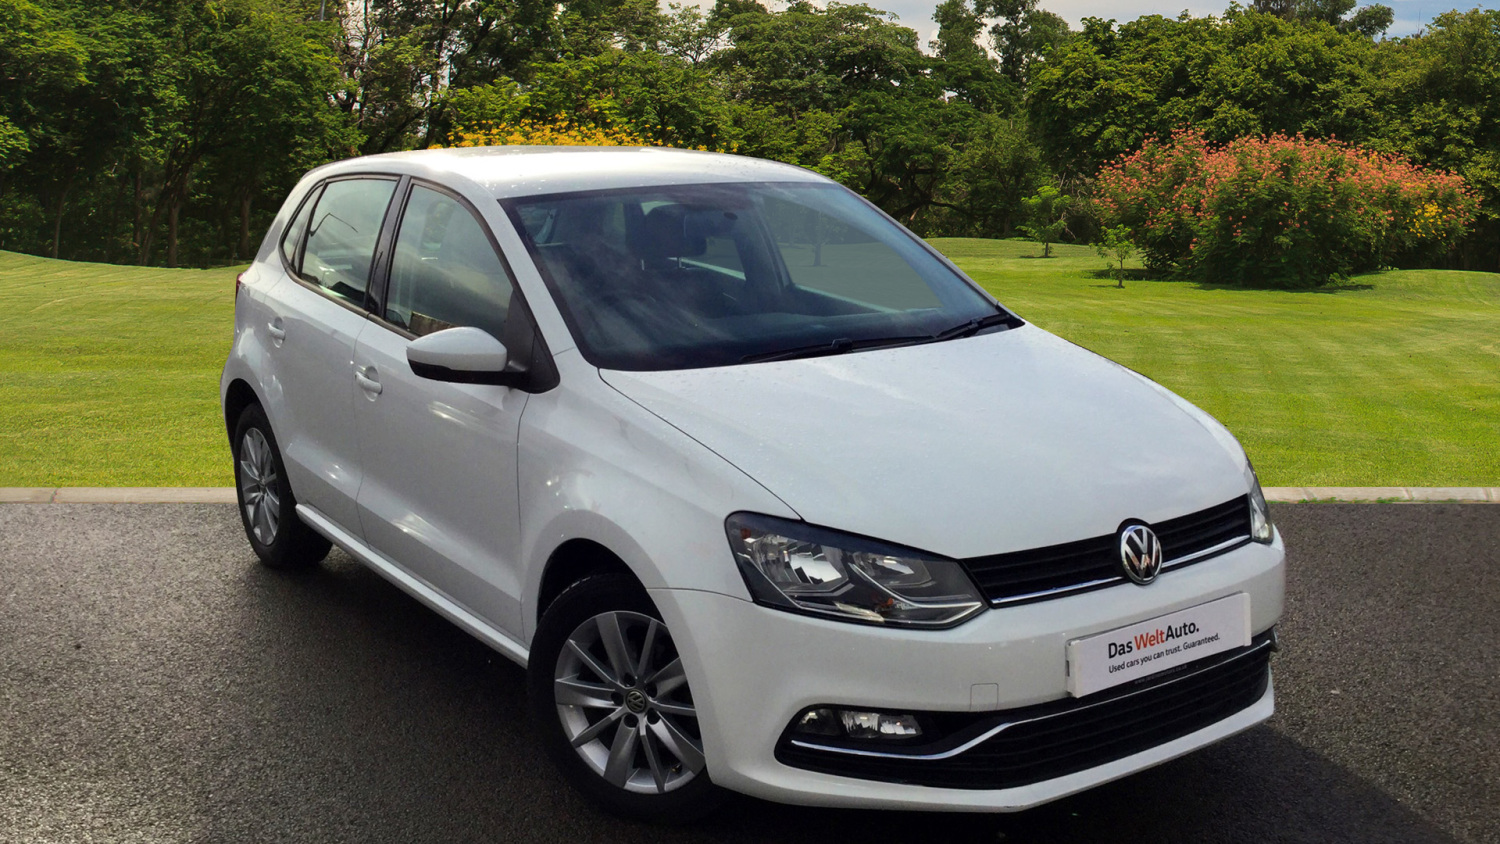 used volkswagen polo 1 4 tdi se 5dr diesel hatchback for. Black Bedroom Furniture Sets. Home Design Ideas